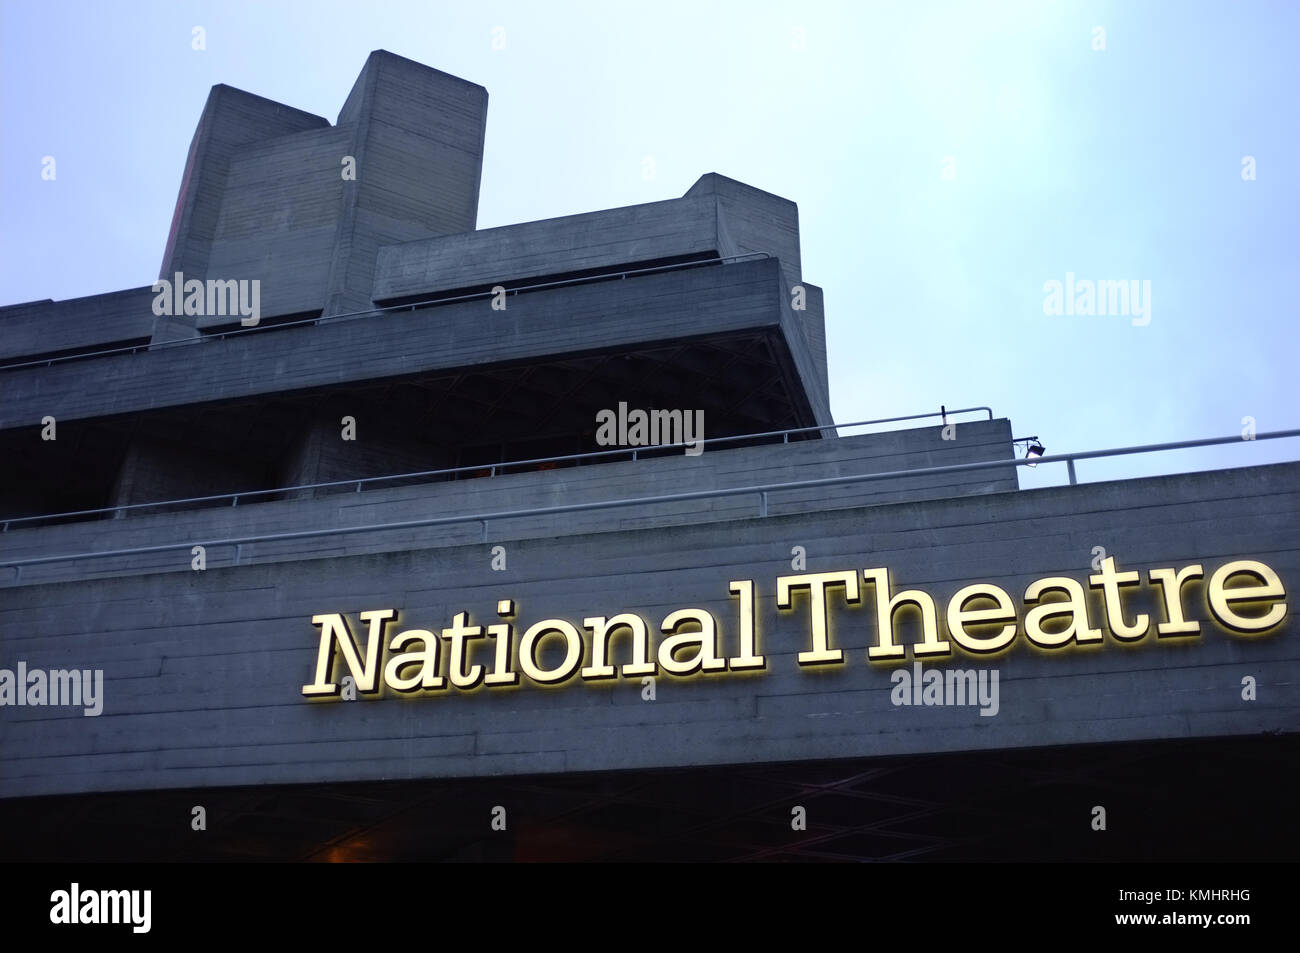 Exterior signage of the National Theatre, London, UK, December 4, 2017 - Stock Image